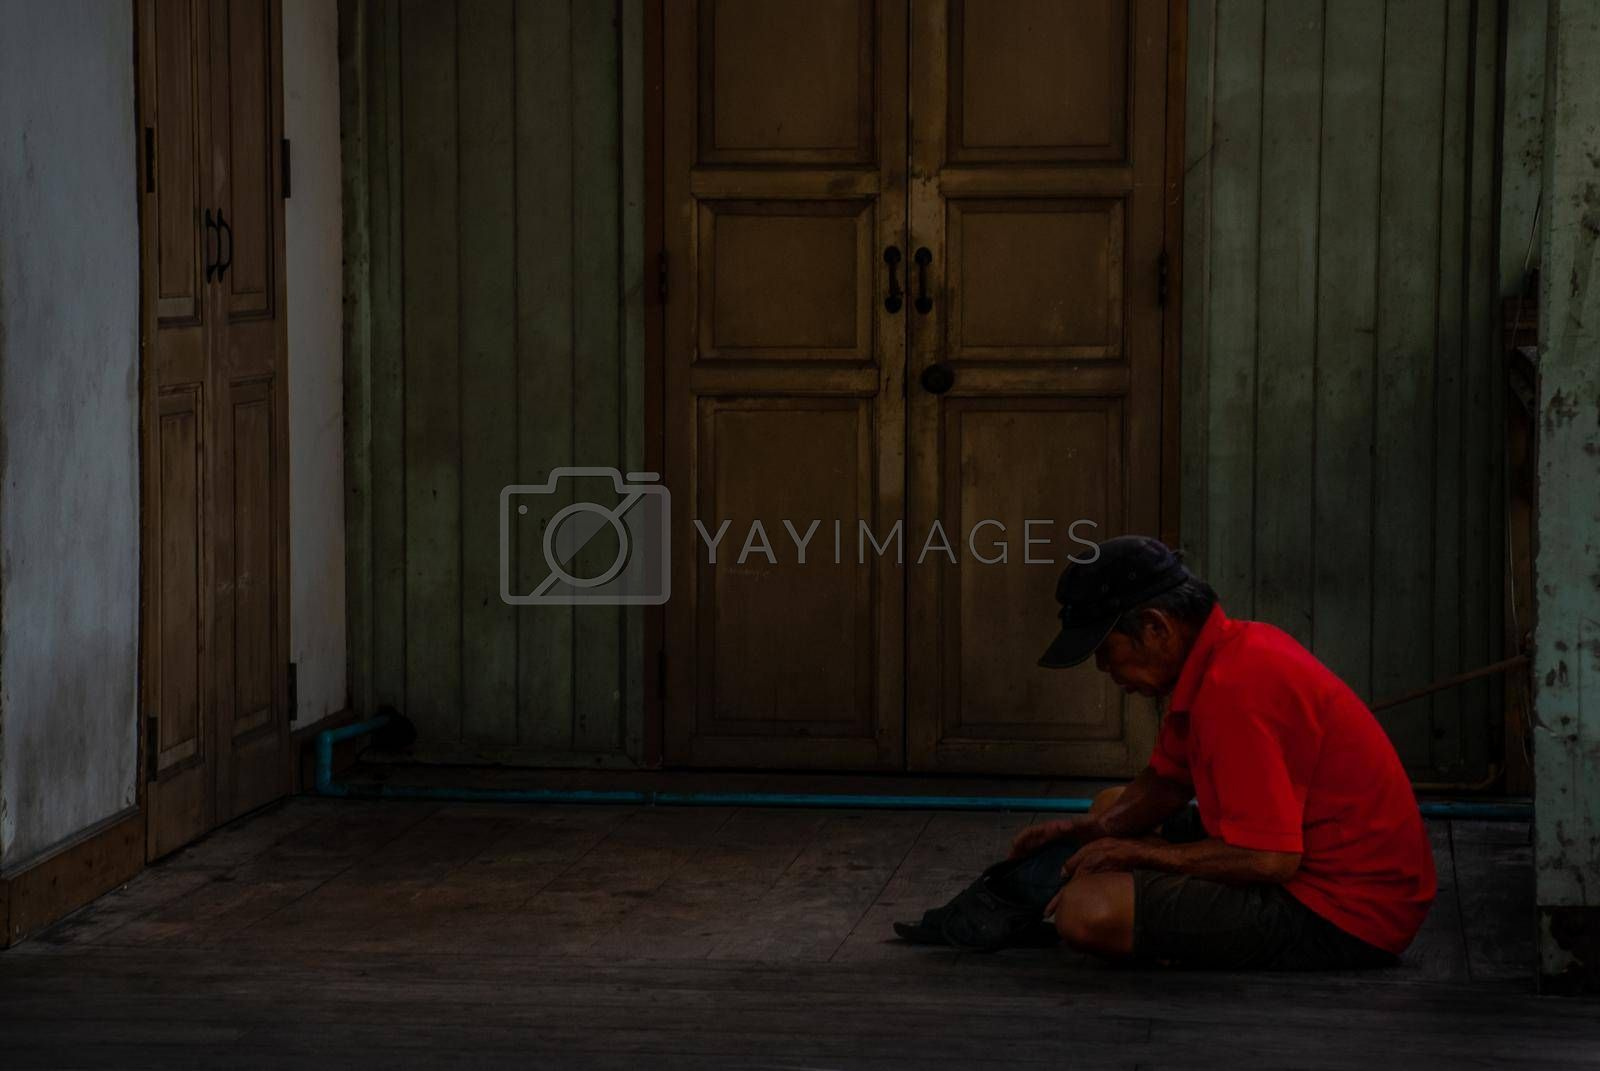 Nonthaburi, Thailand - JUL 21,2019 : Uncle sitting, fixing his shoes in front of the old room.